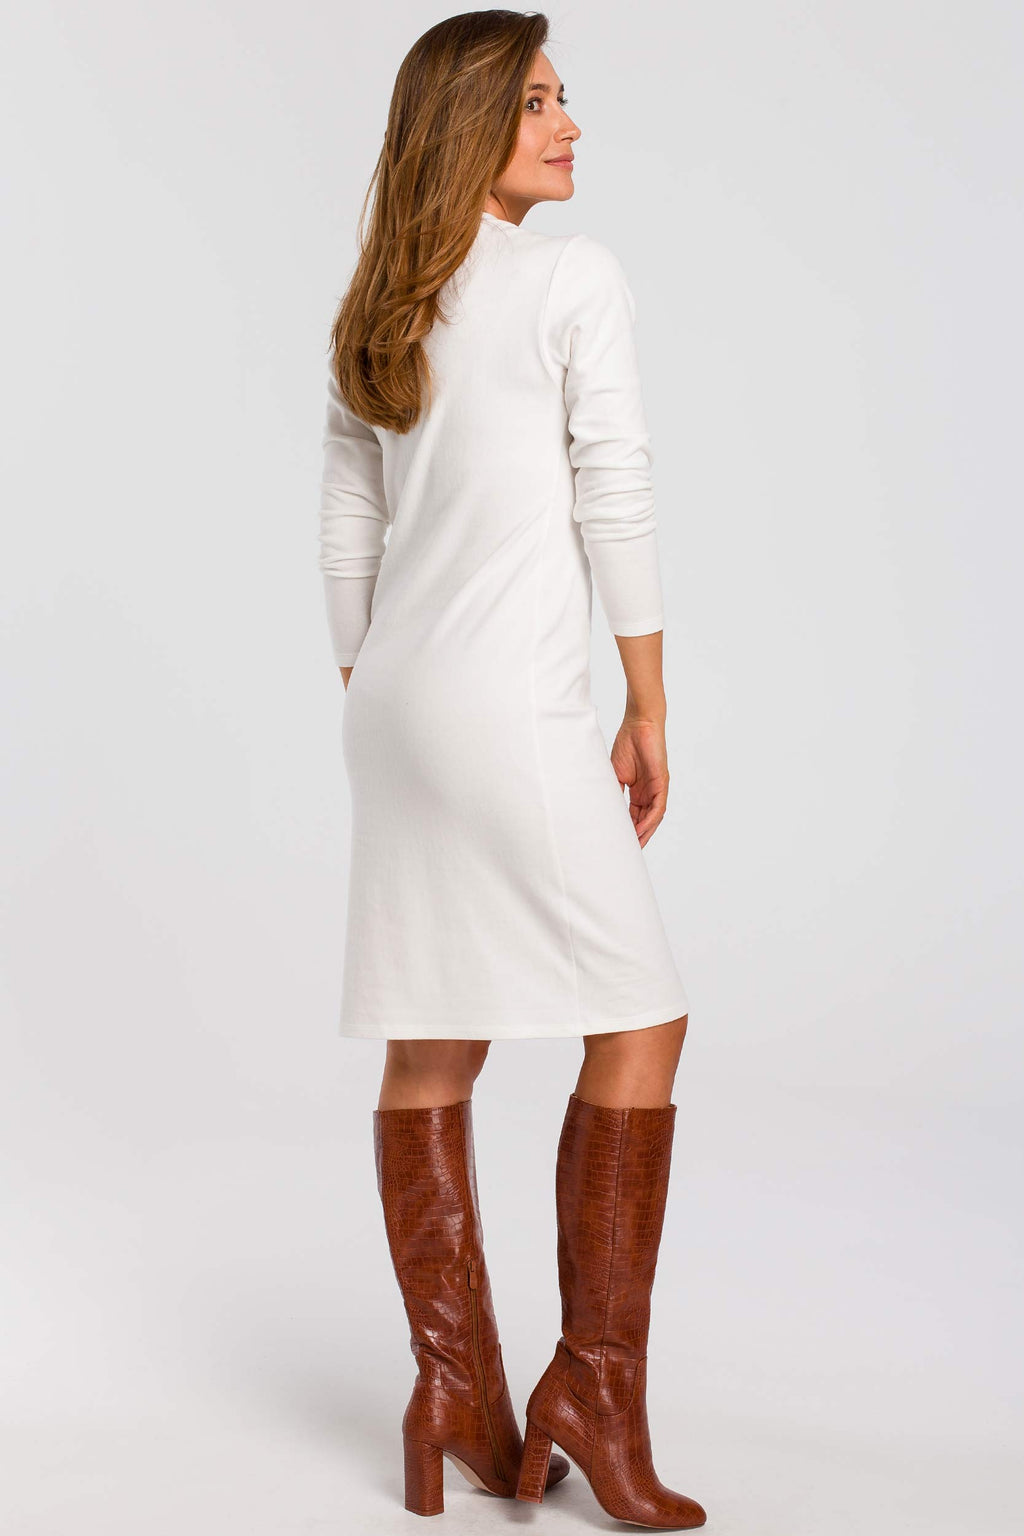 Long Sleeve Midi Ecru Cotton Sweater Dress - So Chic Boutique